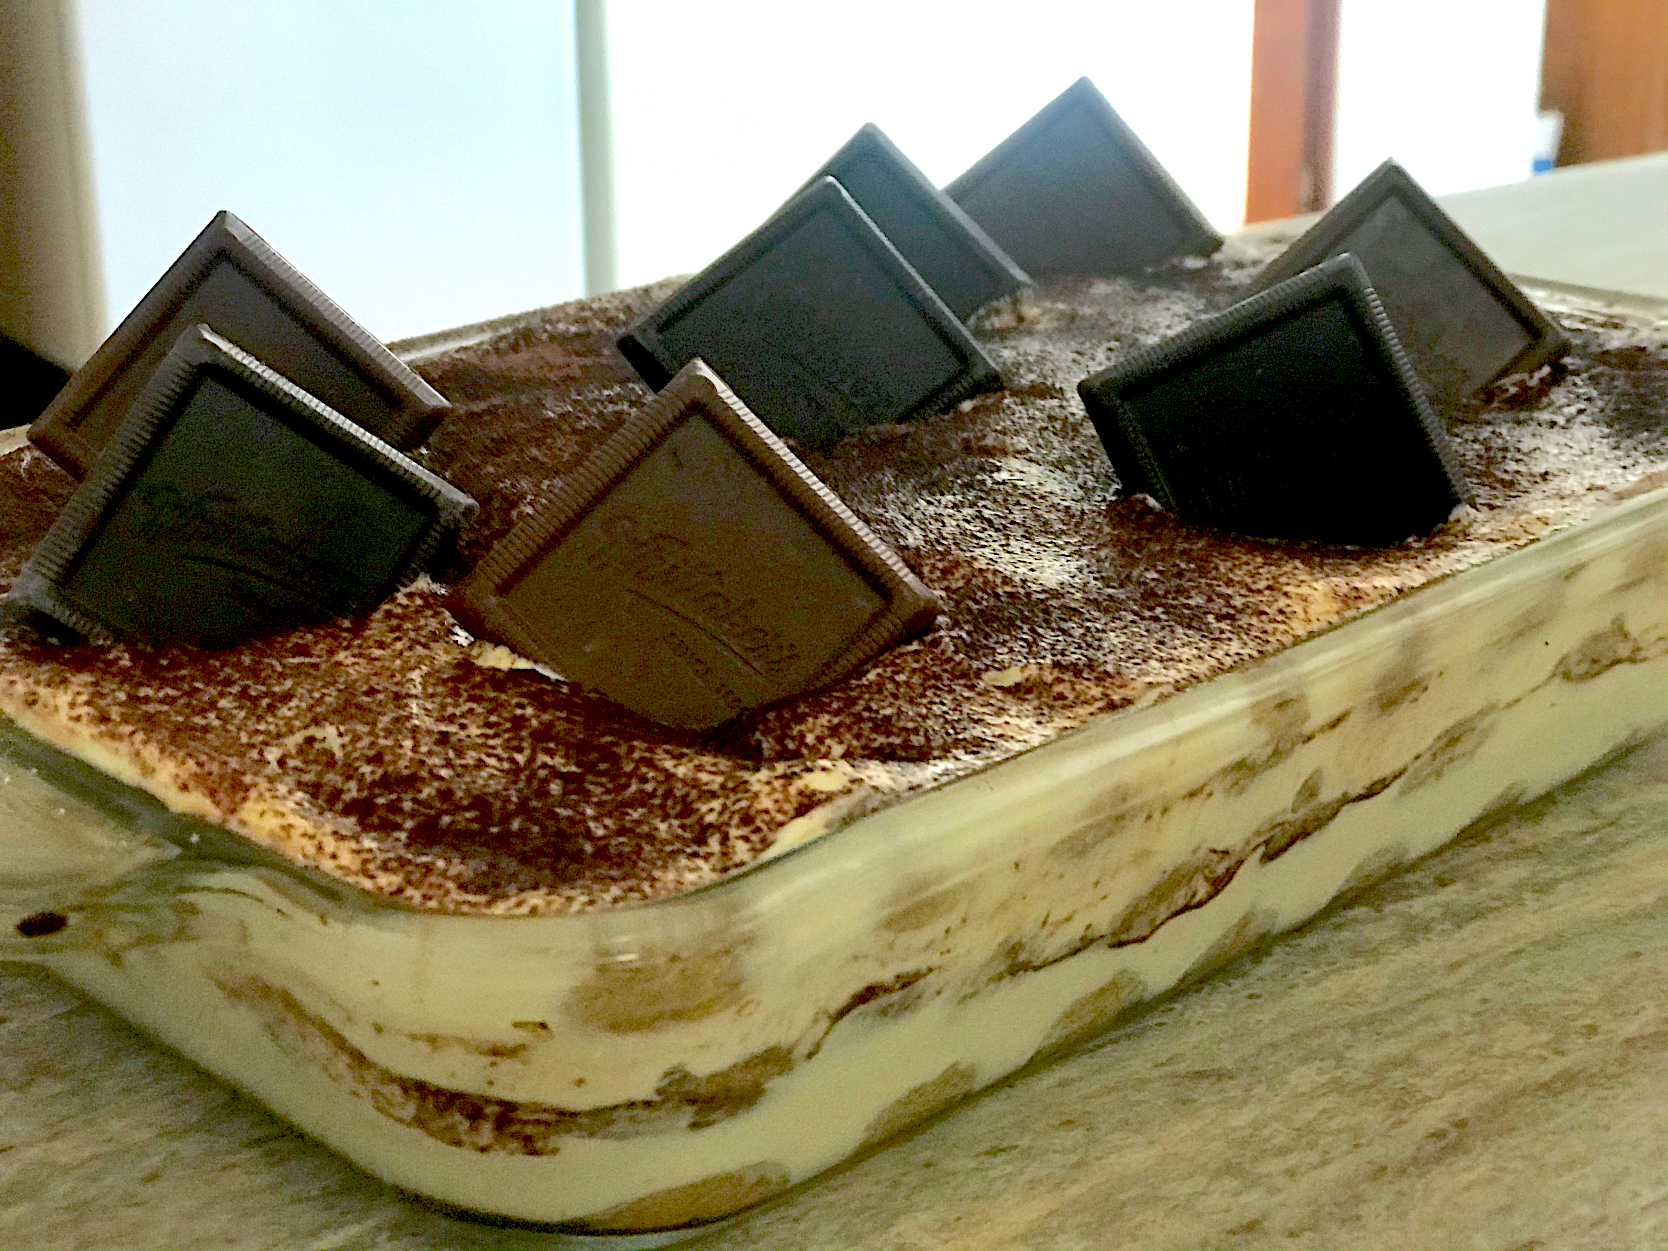 Tiramisu New Years sweet 2020